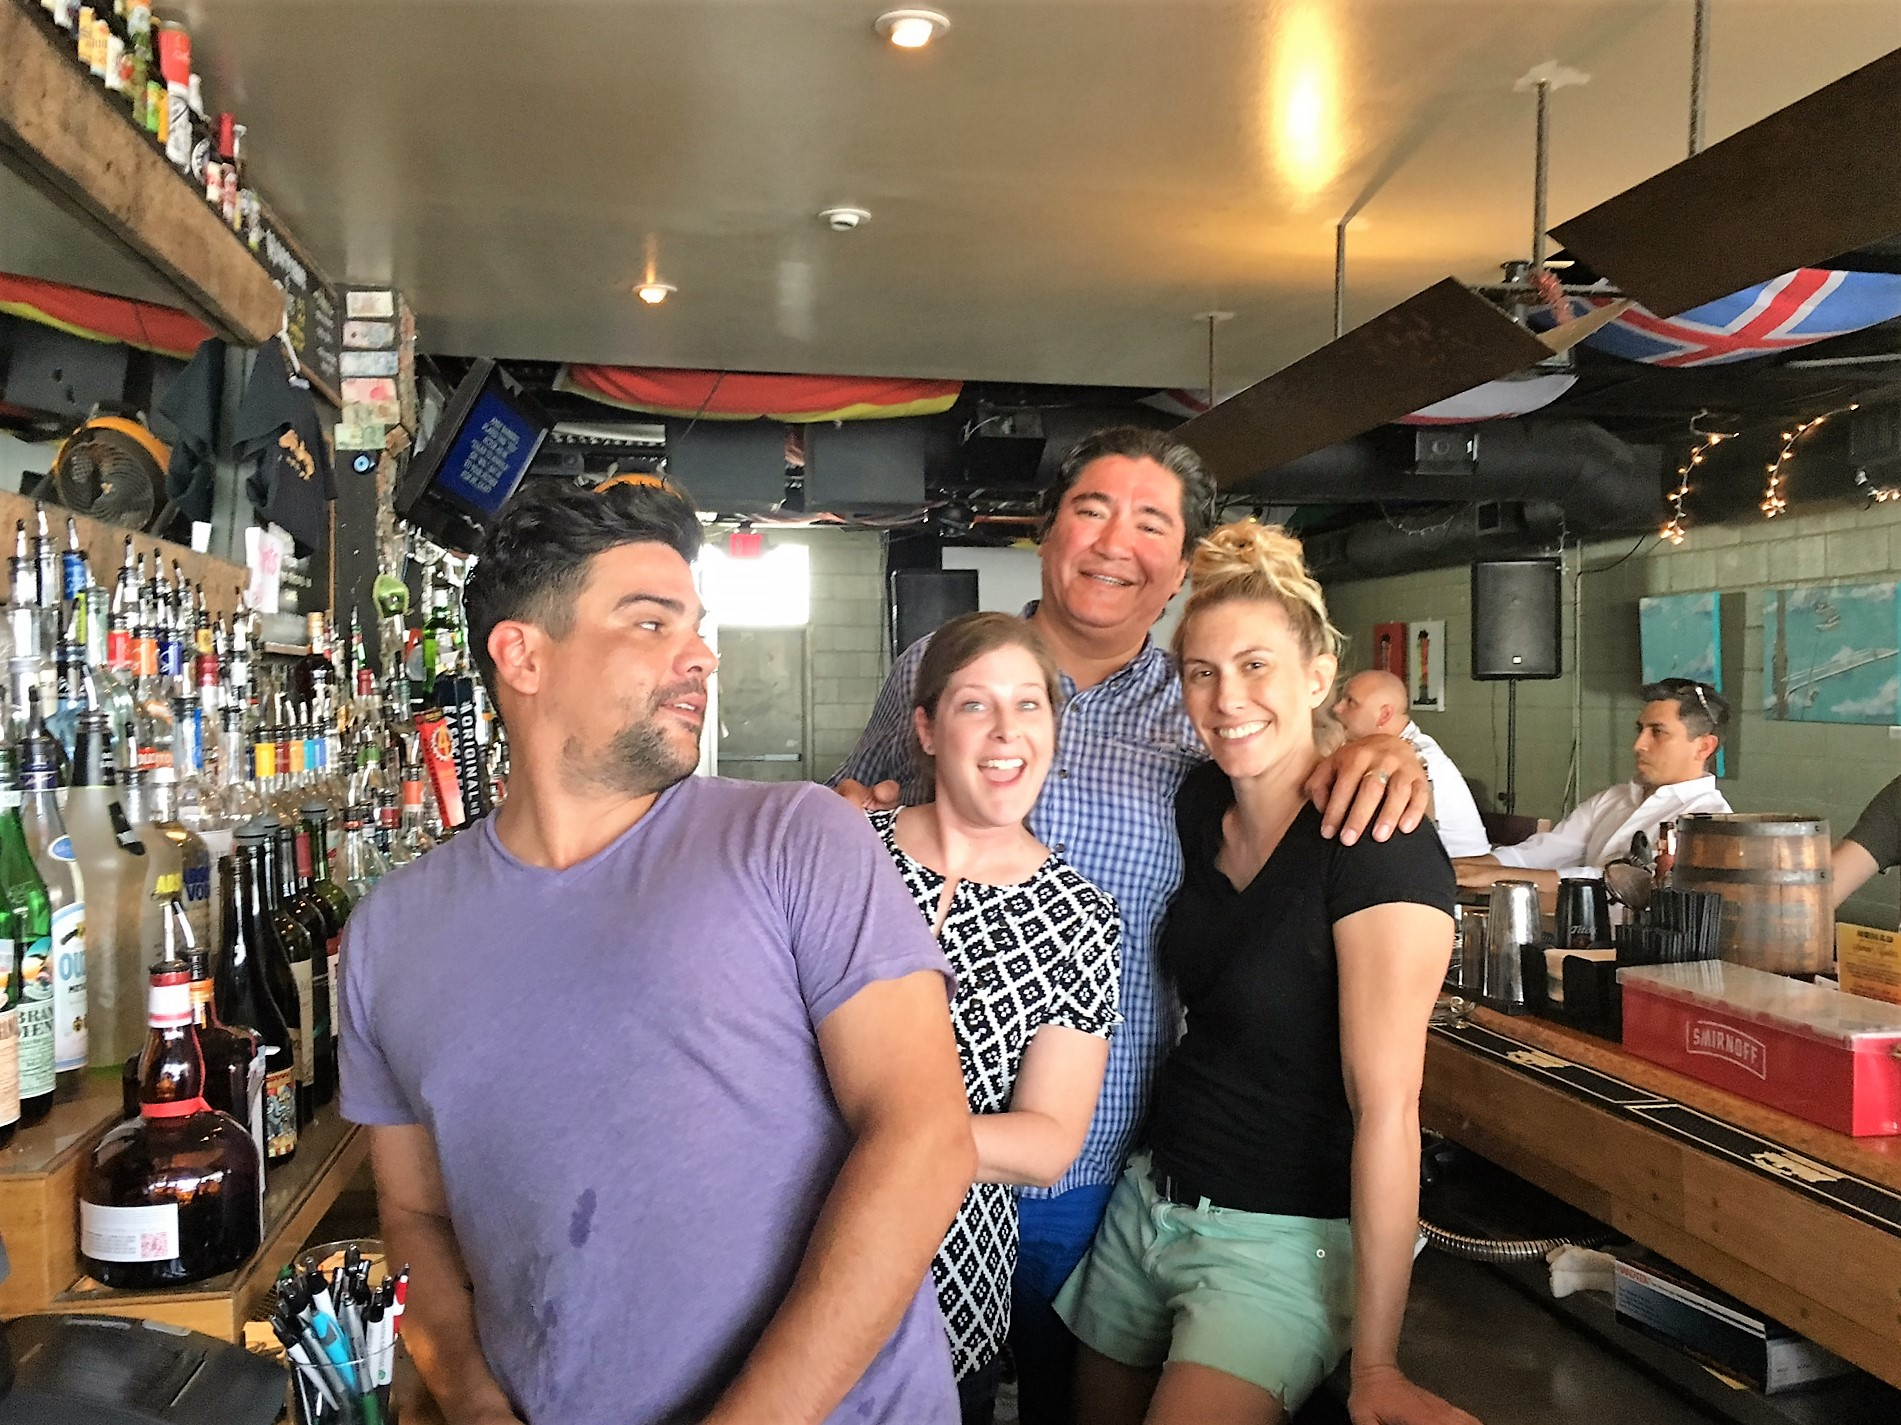 Knomad, Bar in Windsor Park, meet the Owner and Operator Miguel Jimenez